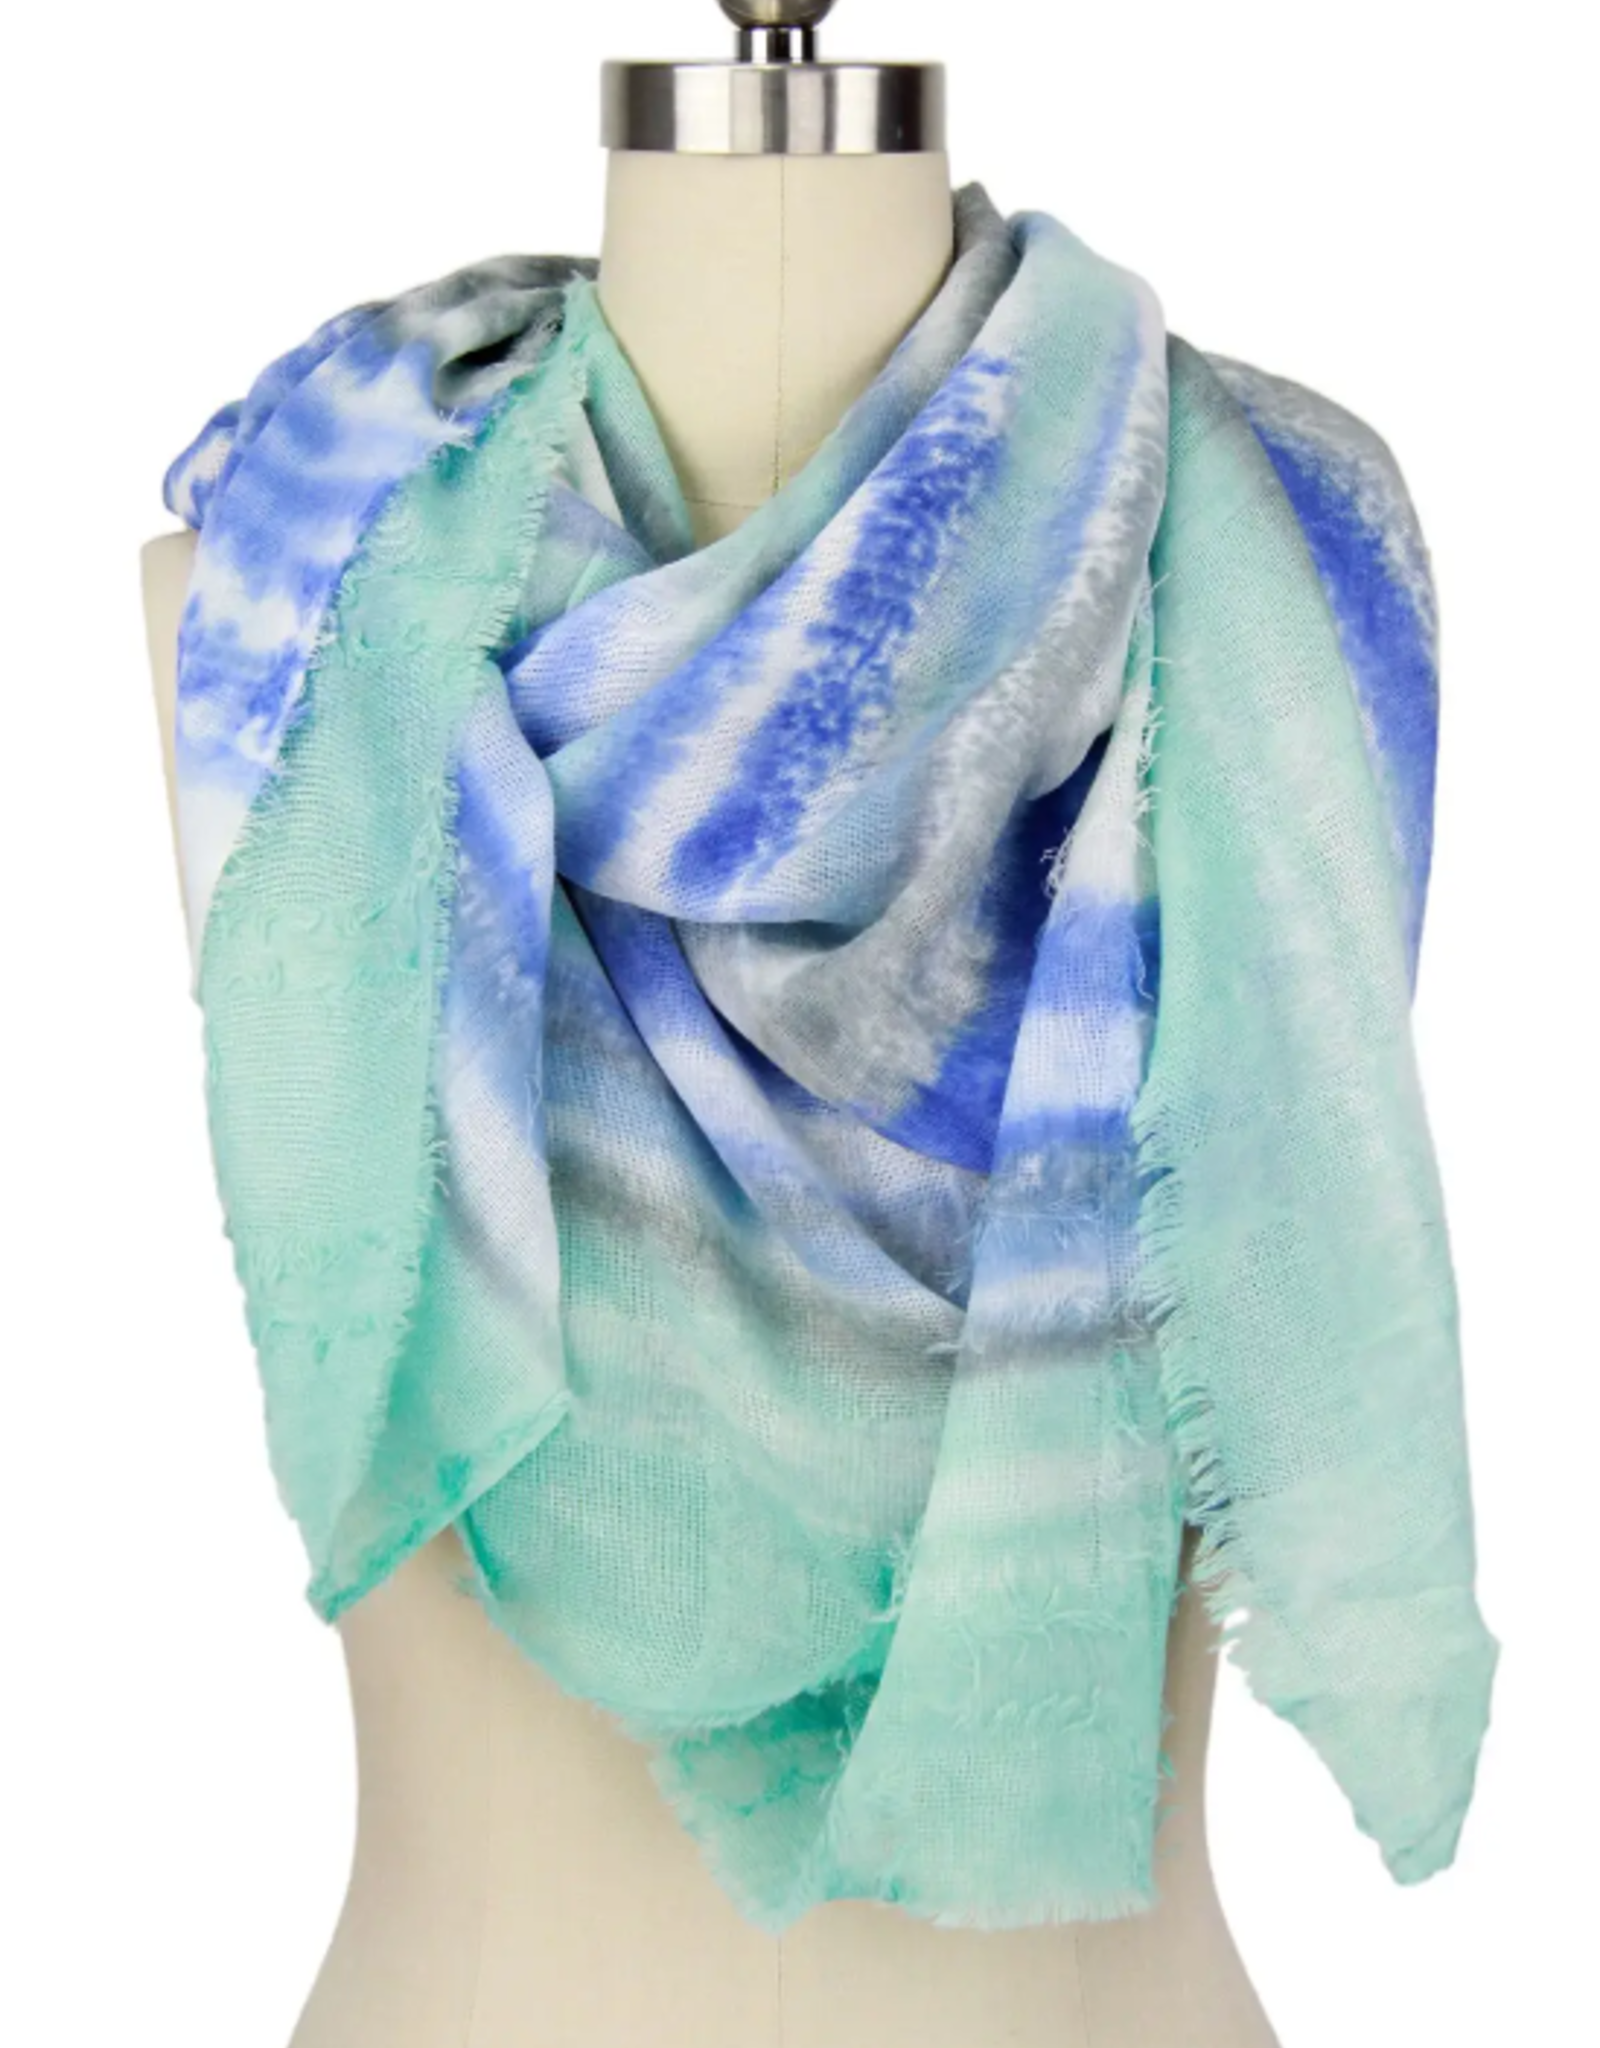 Turquoise tie dye scarf